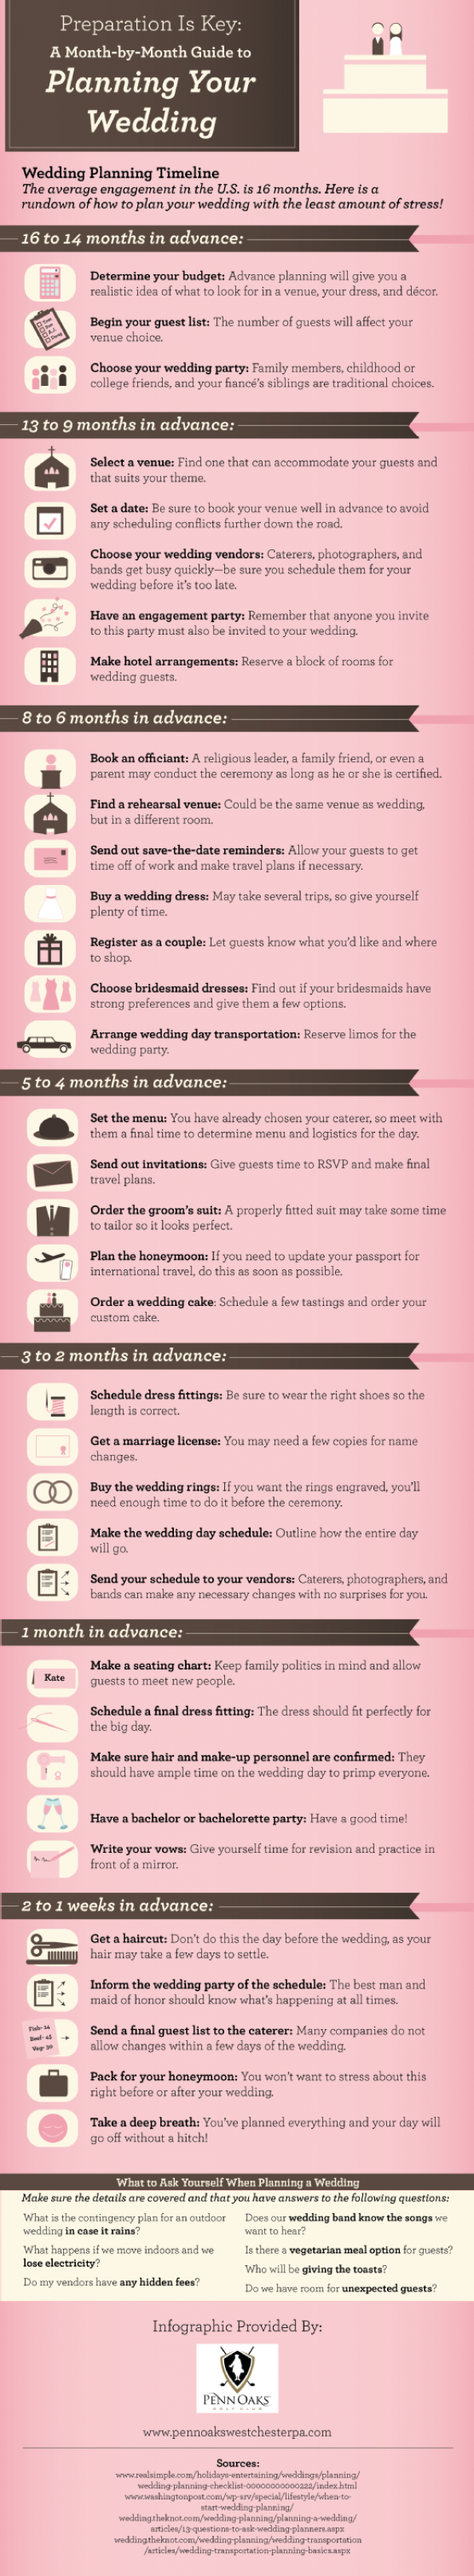 a month by month guide to planning your wedding